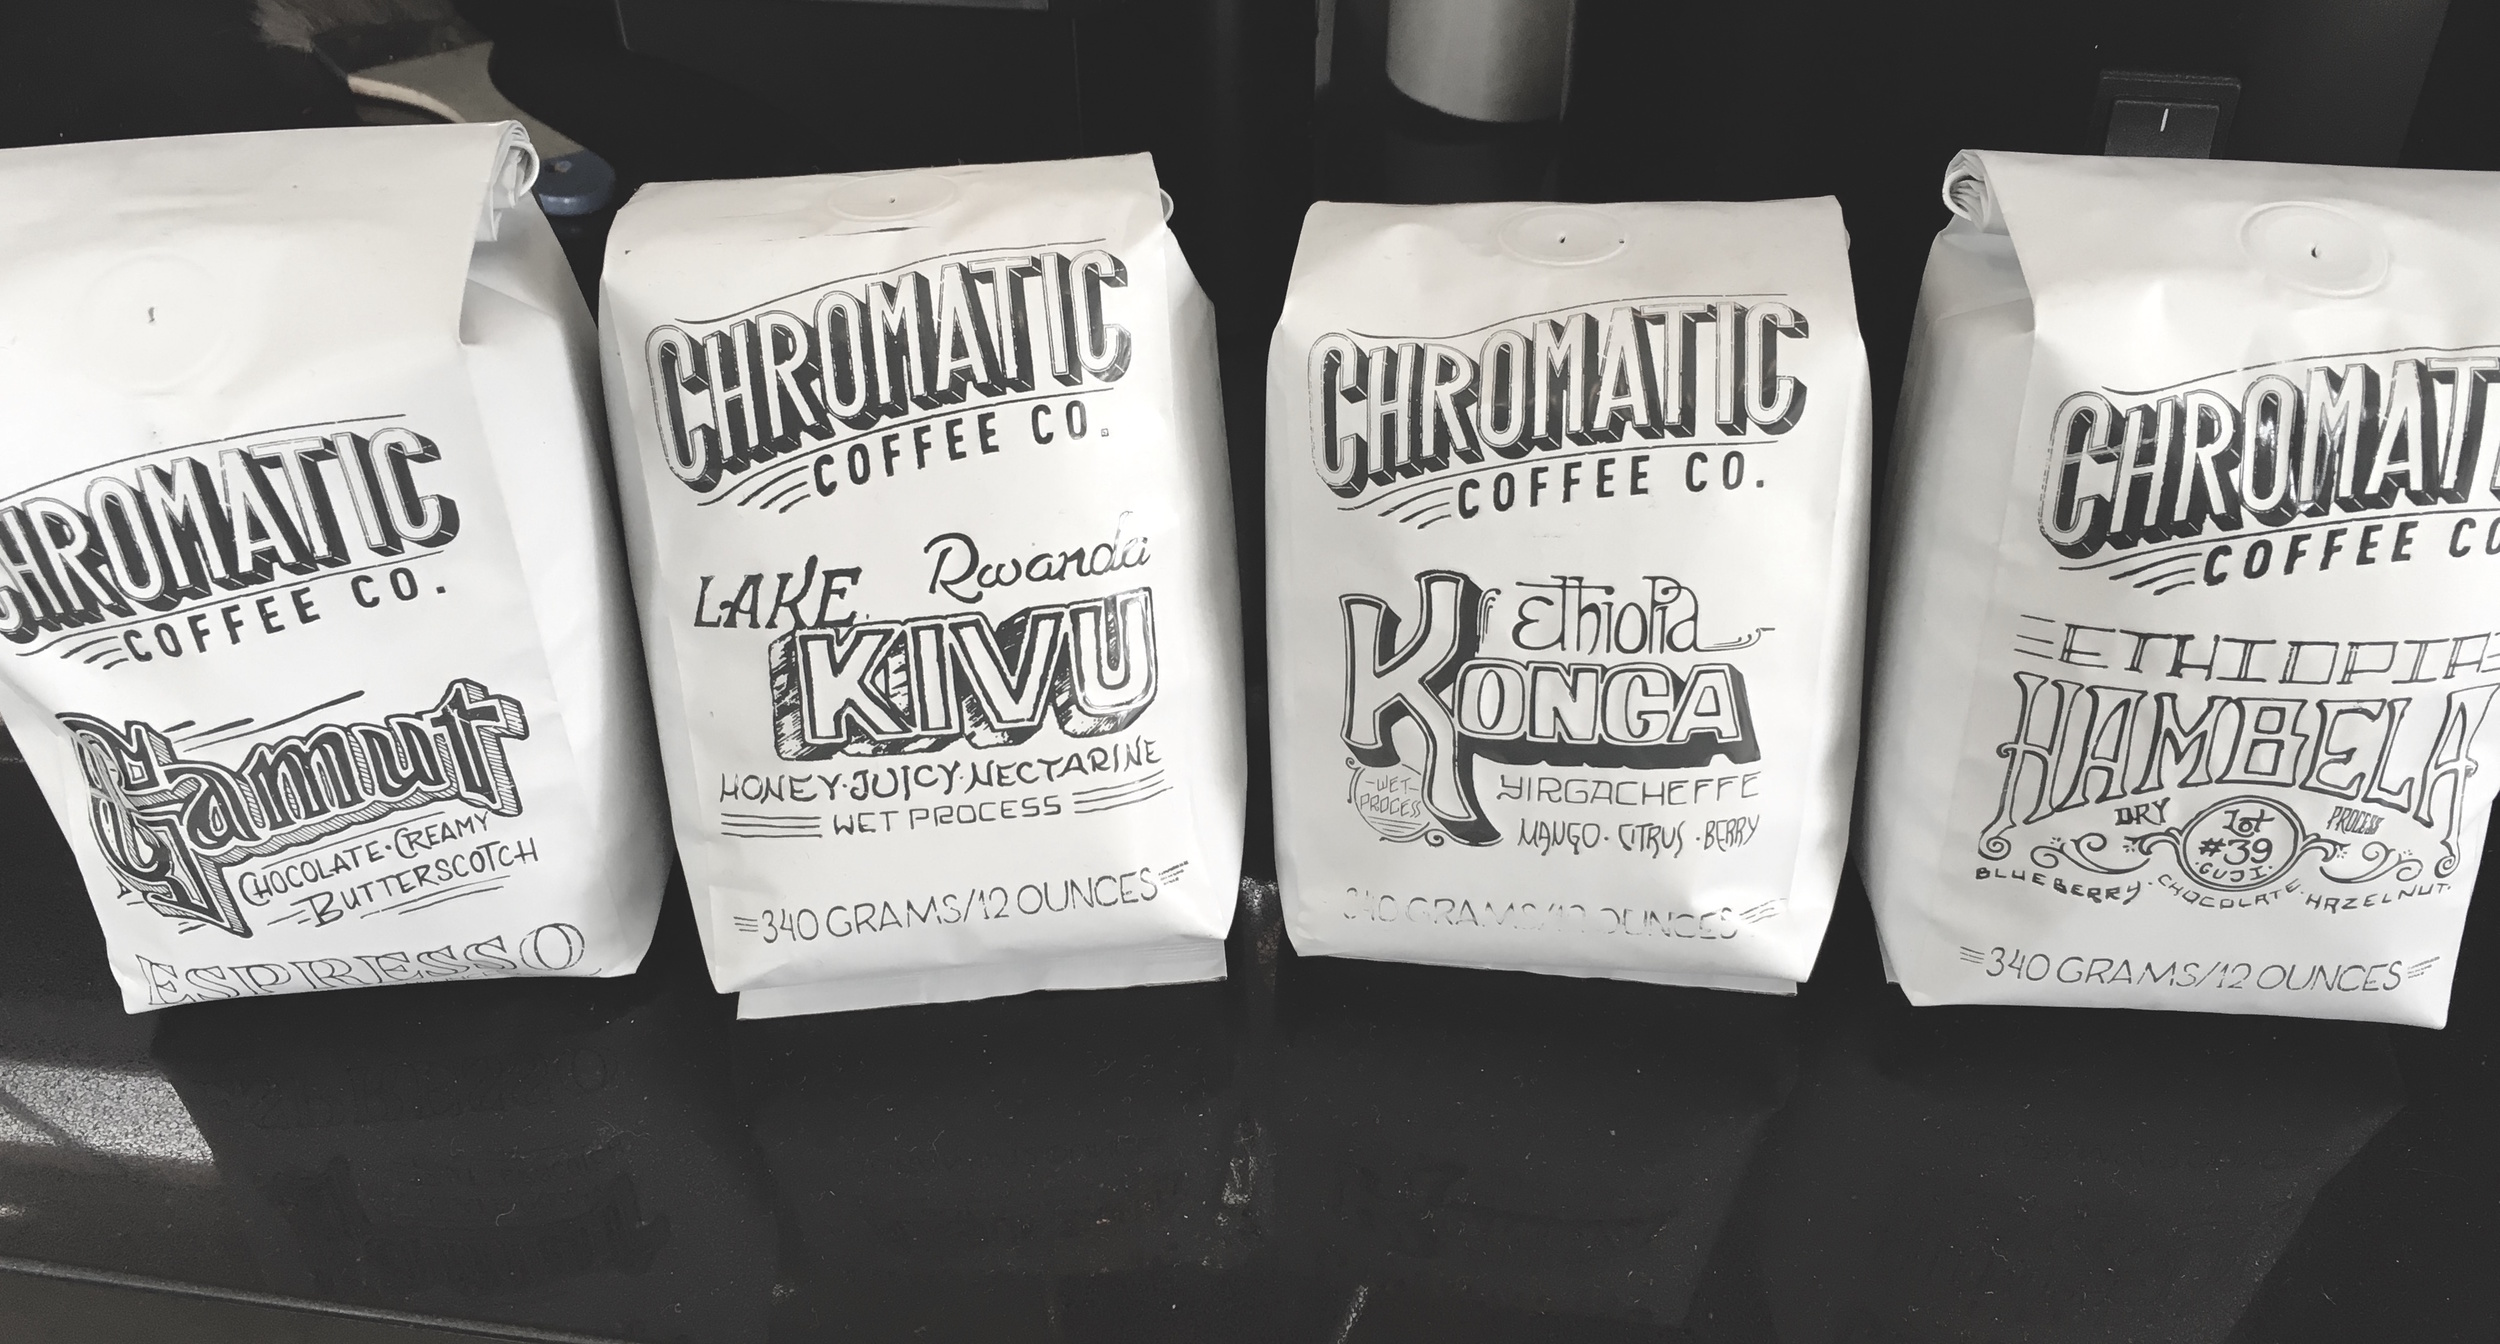 Wholesale Relationship with Chromatic Coffee